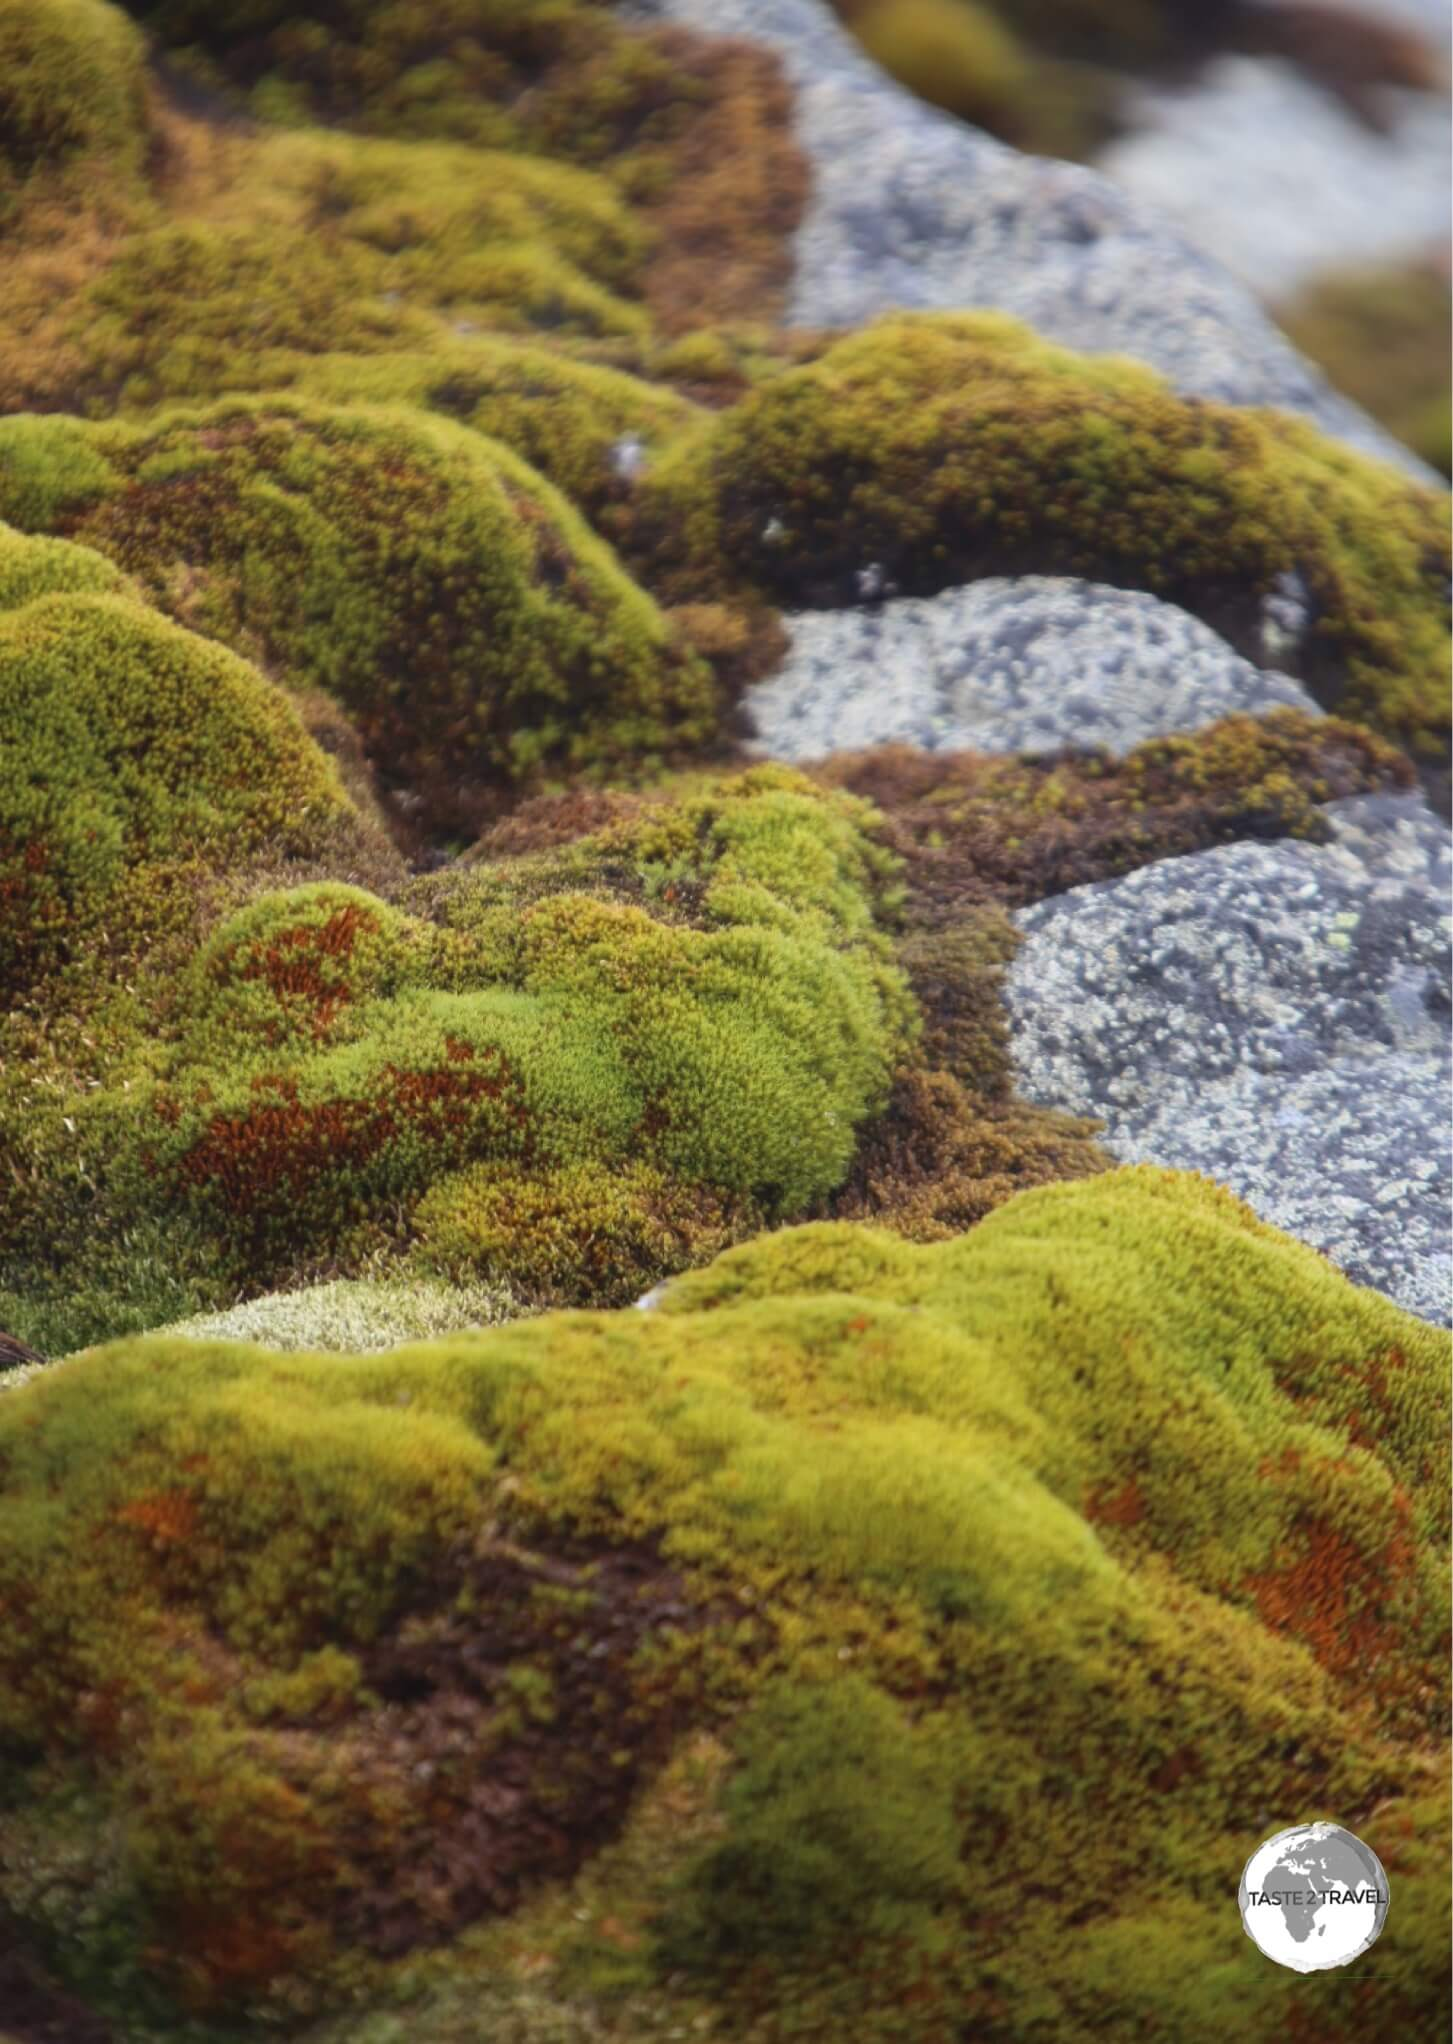 Not all of Antarctica is white. Green moss is seen here at Base Brown and with warmer global temperatures melting Antarctica's ice, scientists have predicted Antarctica will become even greener.